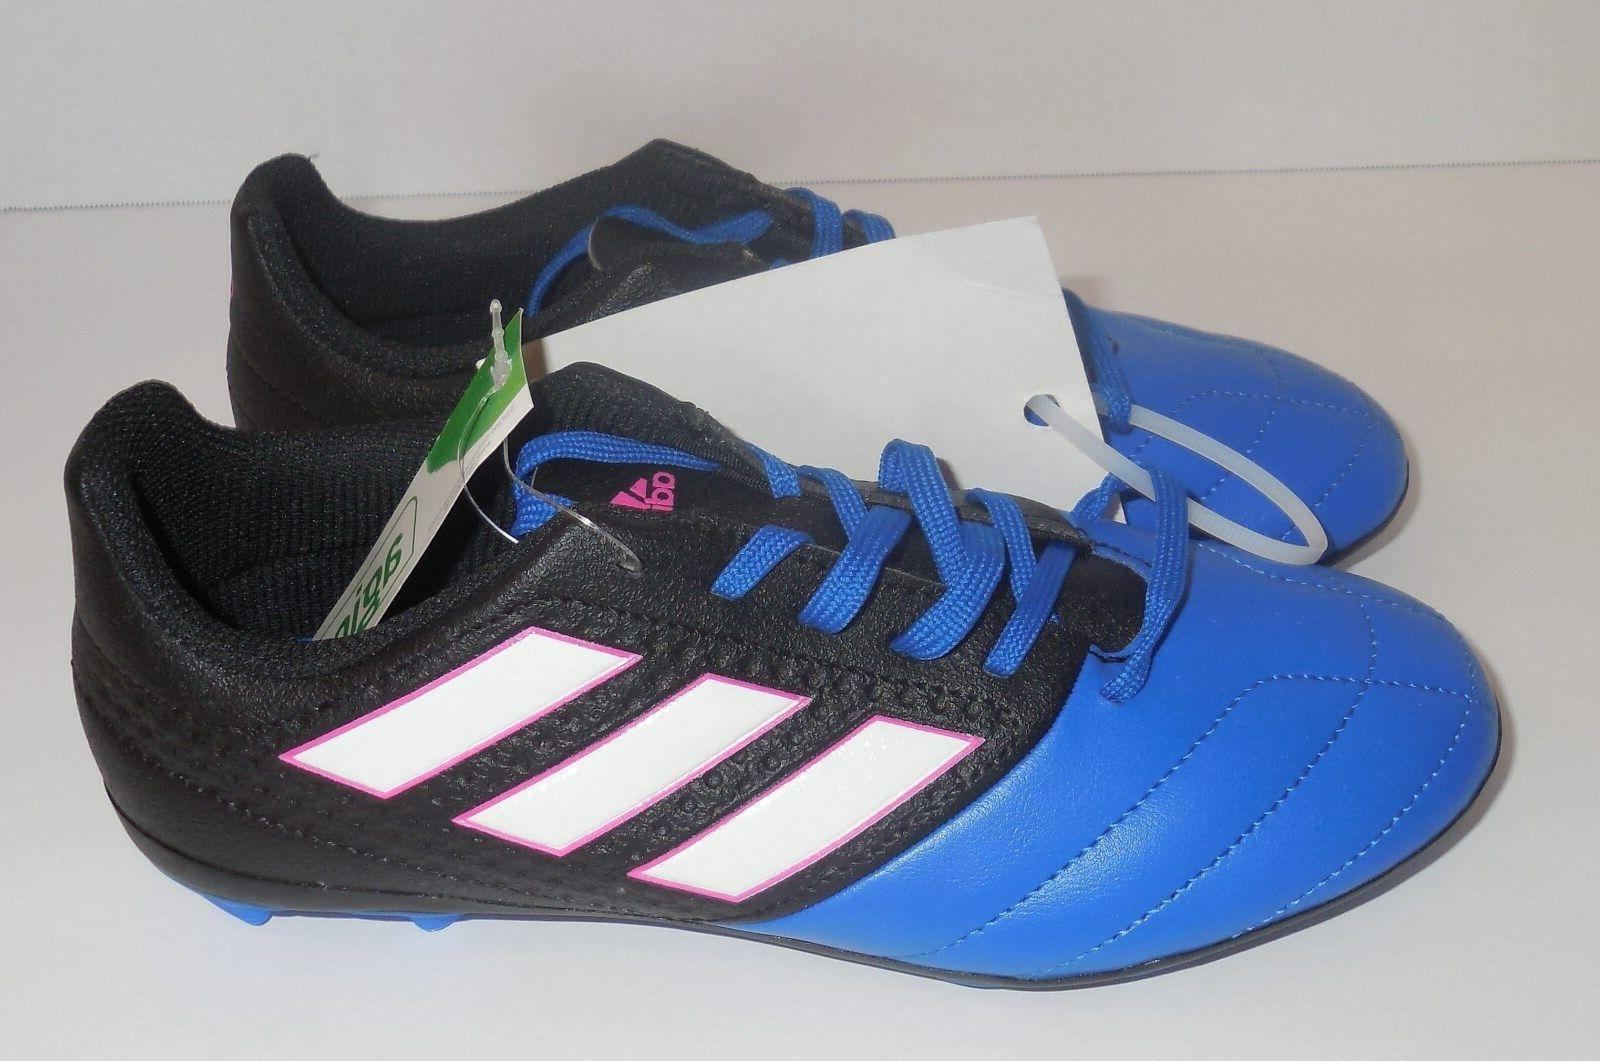 ADIDAS Junior Girls Size 3.5 Soccer Cleats Black Blue